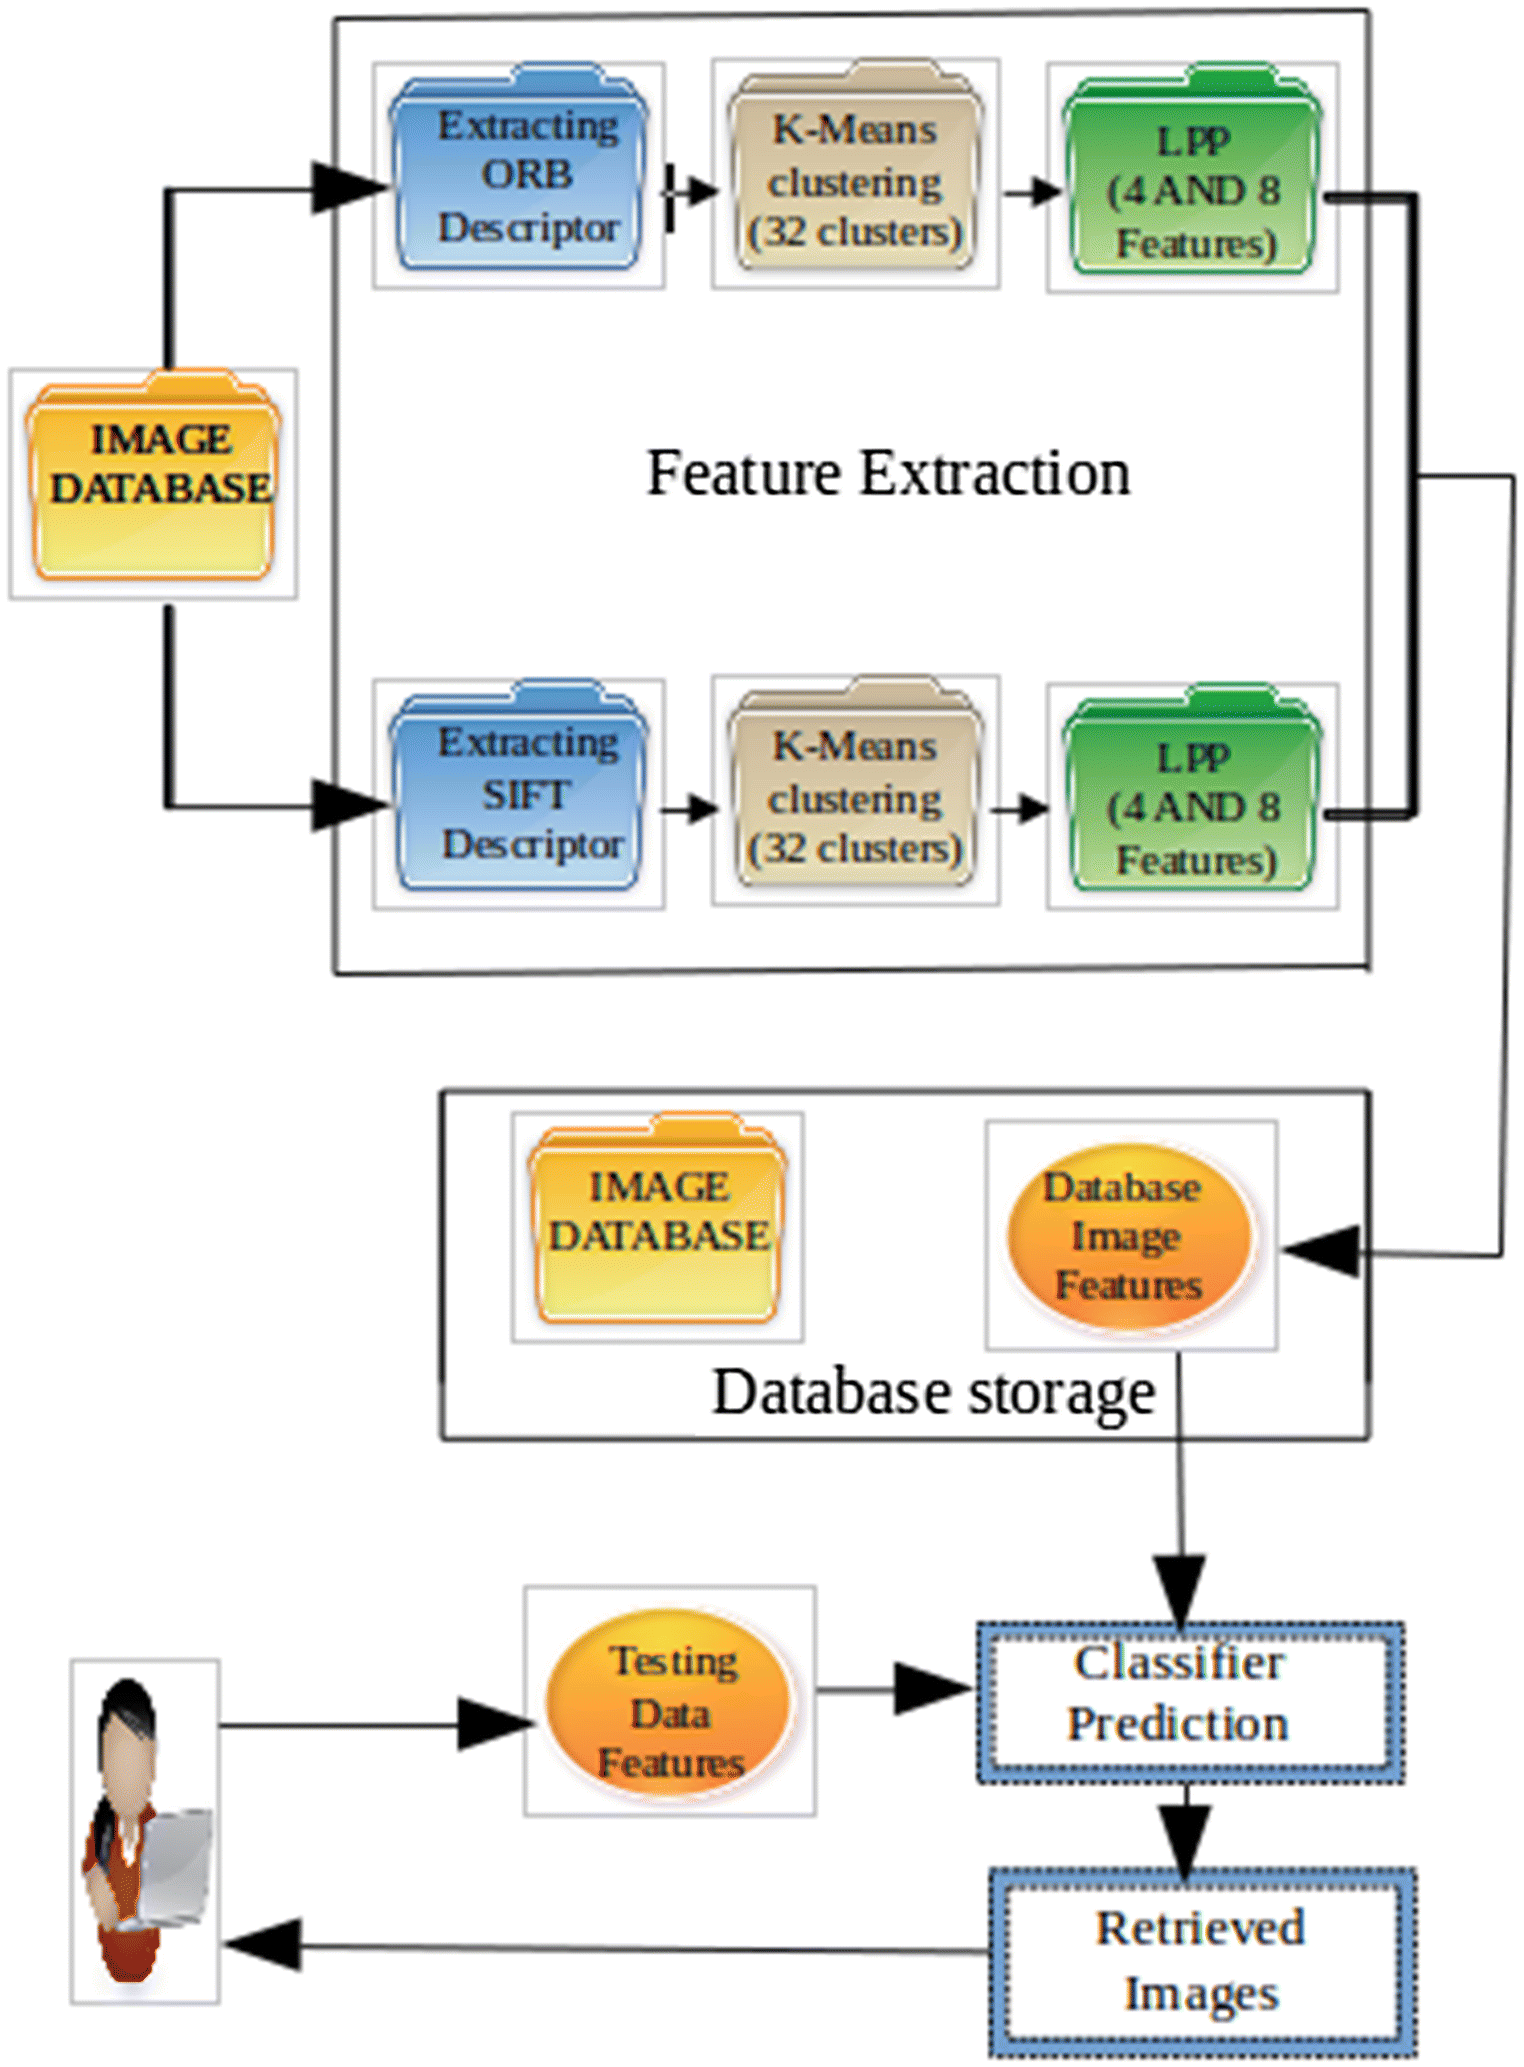 Content-based image retrieval system using ORB and SIFT features